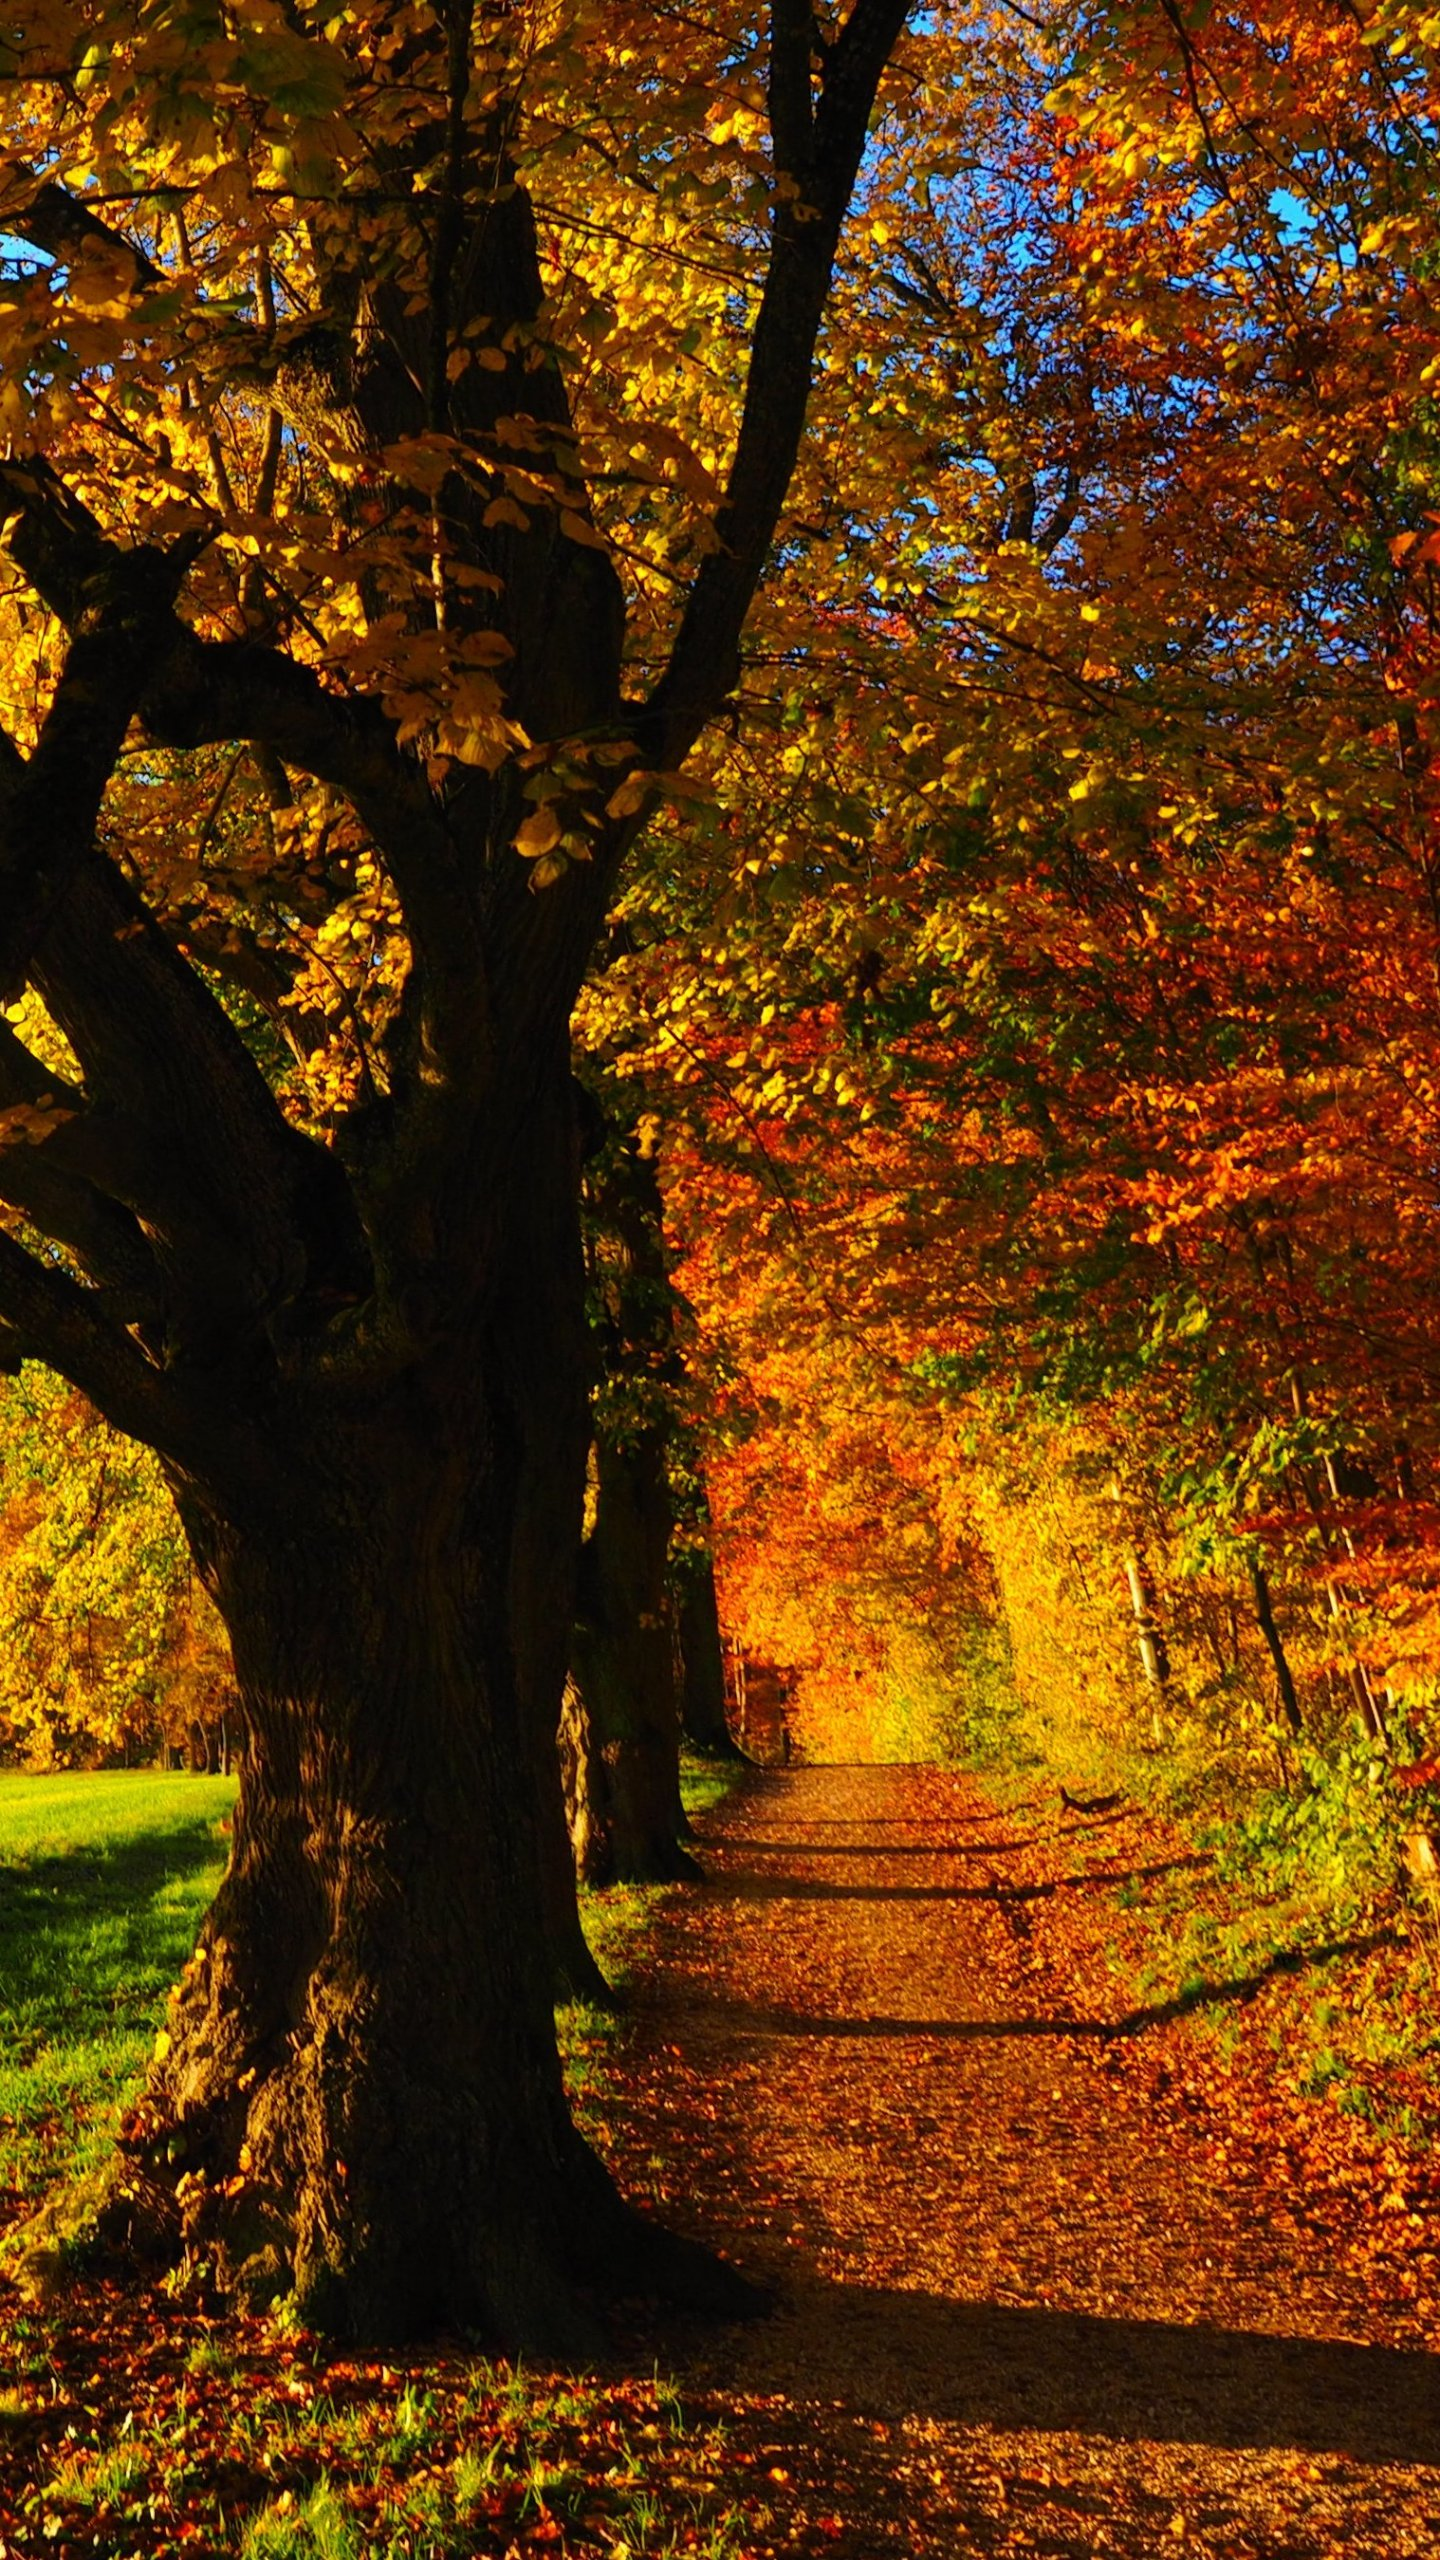 Herbst Wald Wallpaper Telefon Herbst Wallpaper Fur Android 1440x2560 Wallpapertip